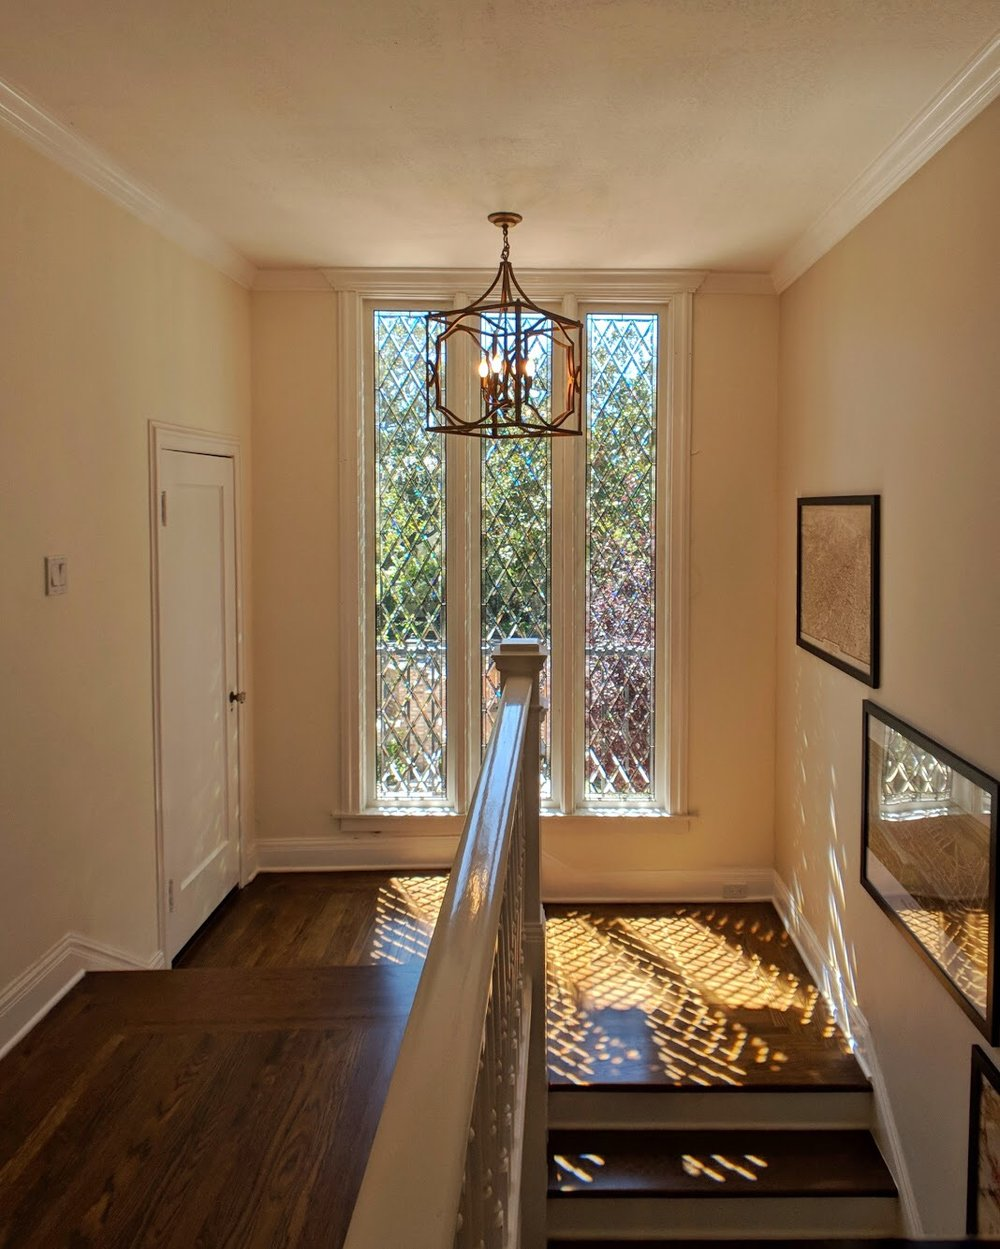 stained glass leaded glass design legacy glass studios menlo park bay area california custom design beveled diamonds seedy glass light refraction beveled glass elegant high end home light pattern stairwell.JPG